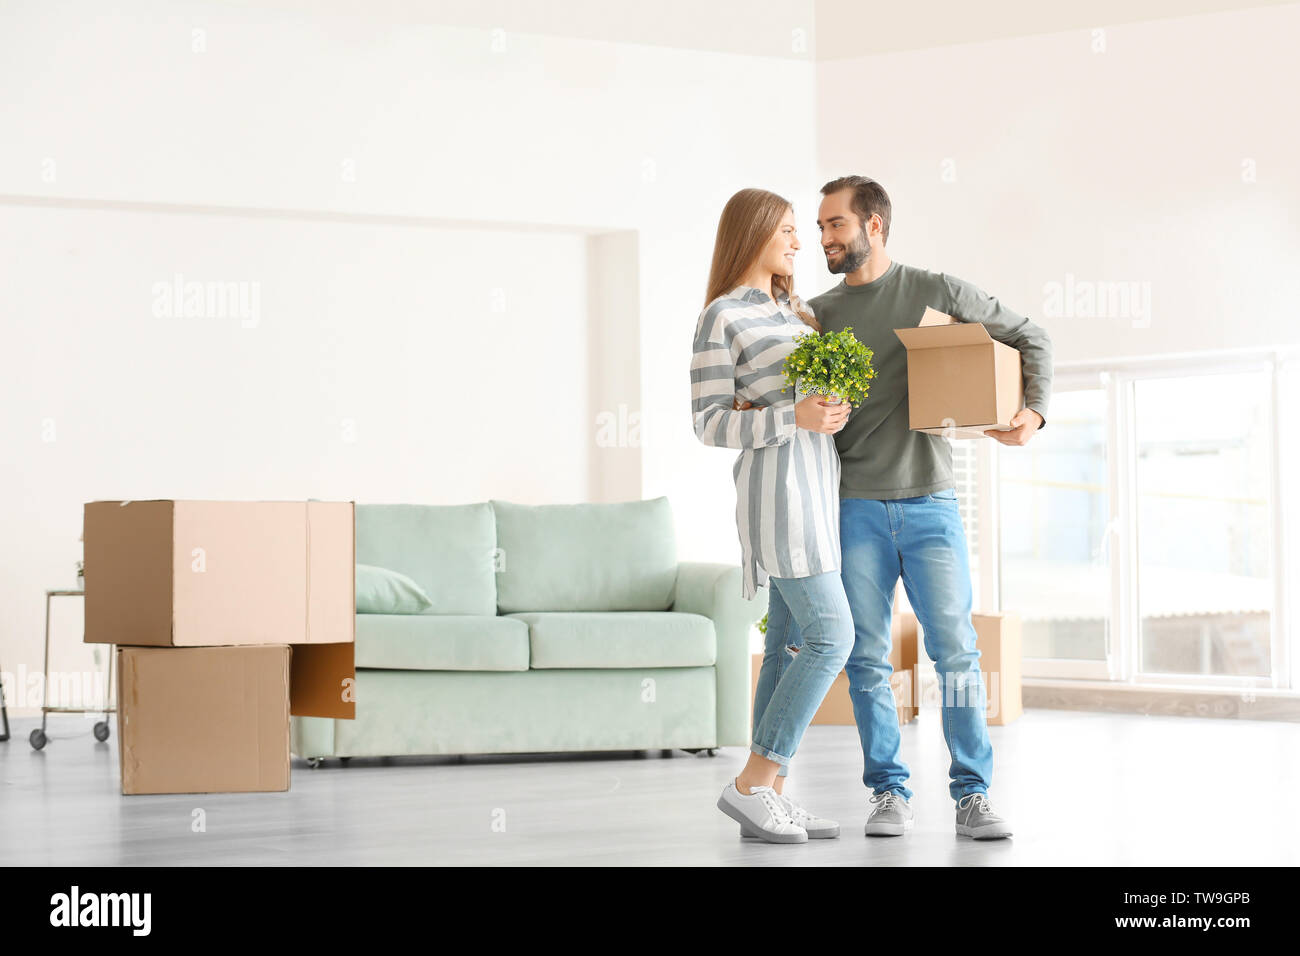 Young man holding moving box and woman with houseplant in room at new home - Stock Image